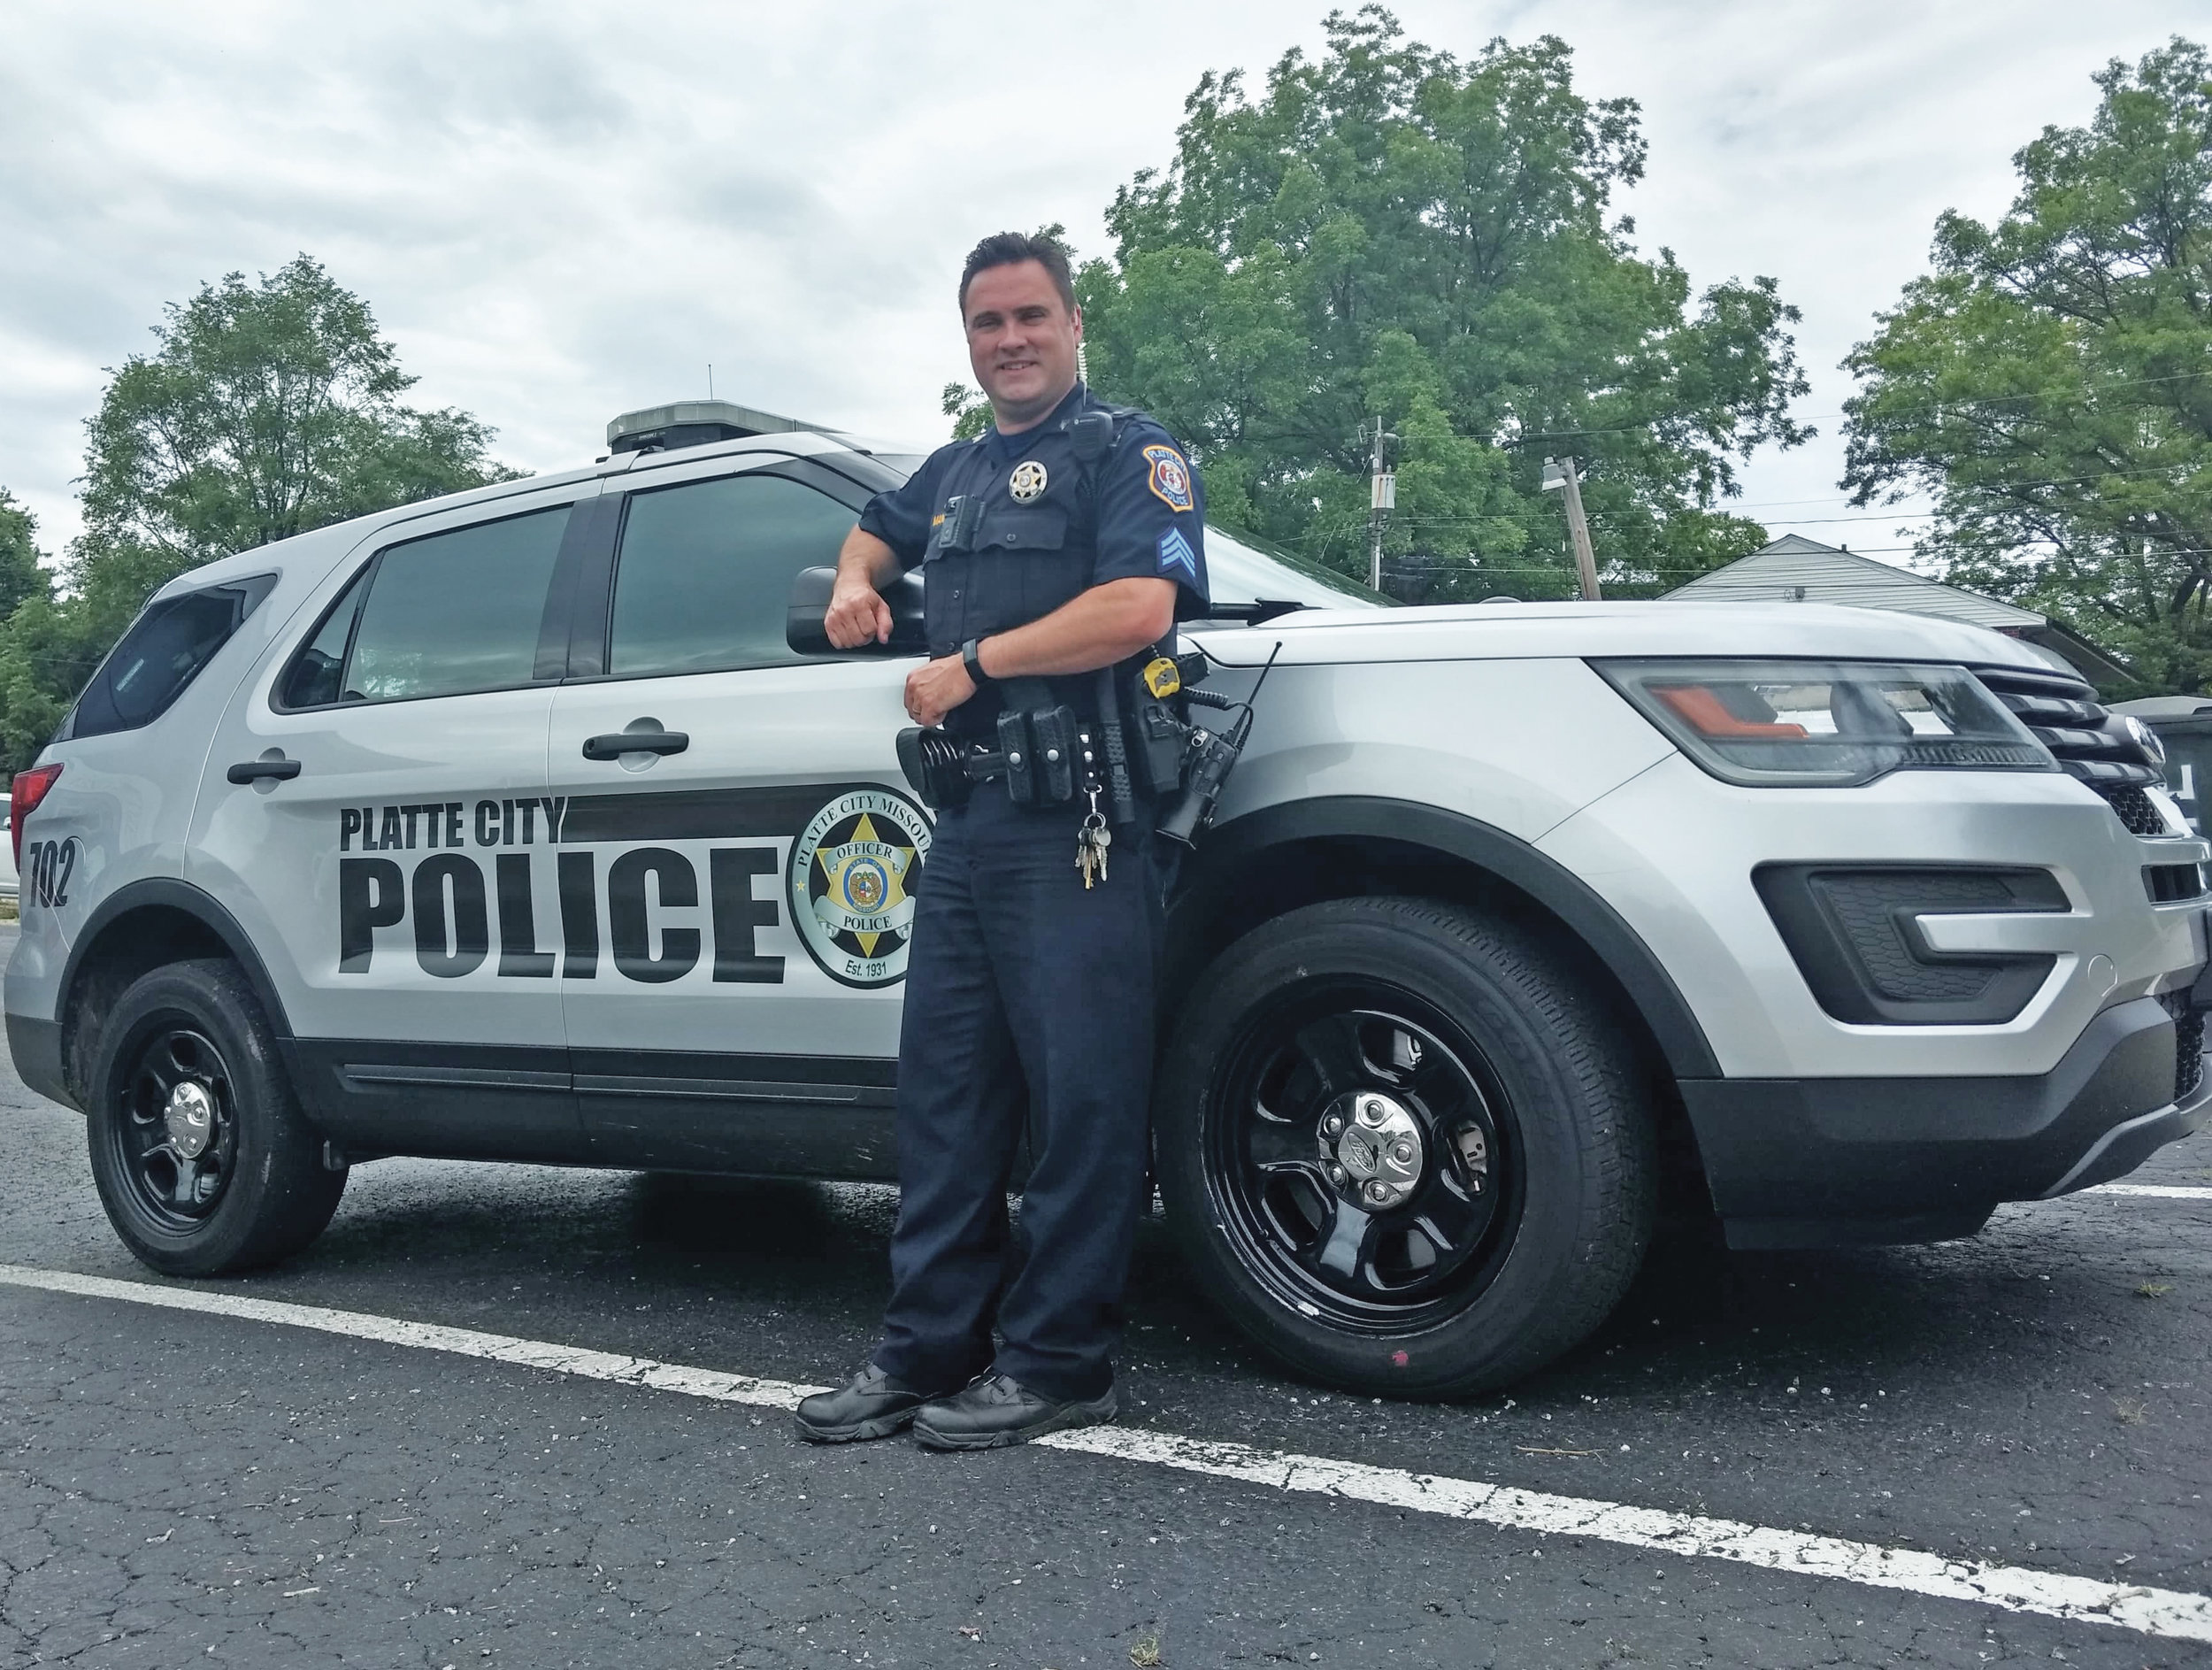 JEANETTE FAUBION/Citizen photo Sgt. Mike Mand, father of two, has served with the Platte City Police Department for 12 years.